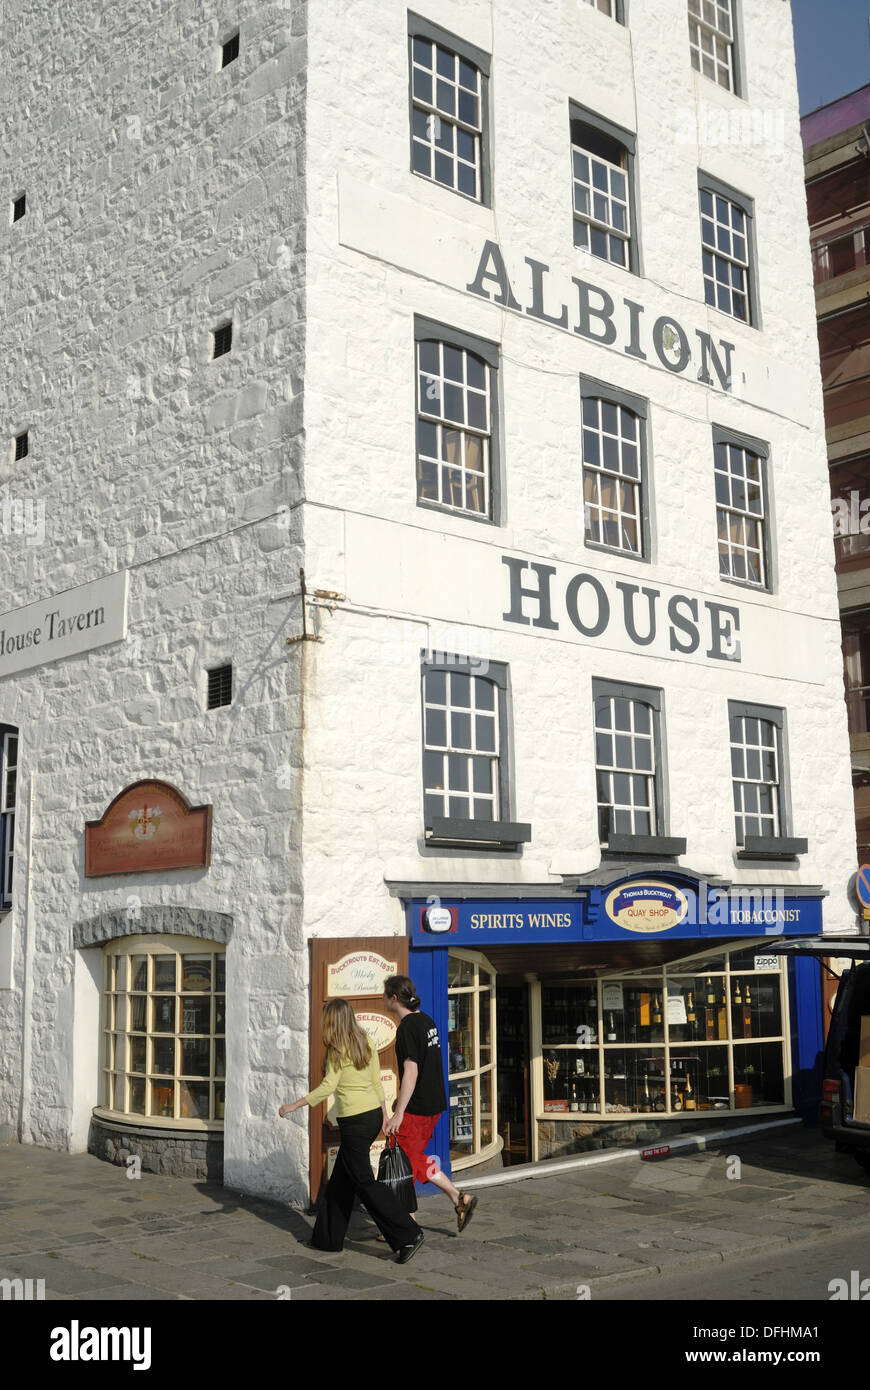 Albion House Tavern, Saint Peter Port, Island Of Guernsey, Bailiwick Of  Guernsey, British Crown Dependency, English Channel,